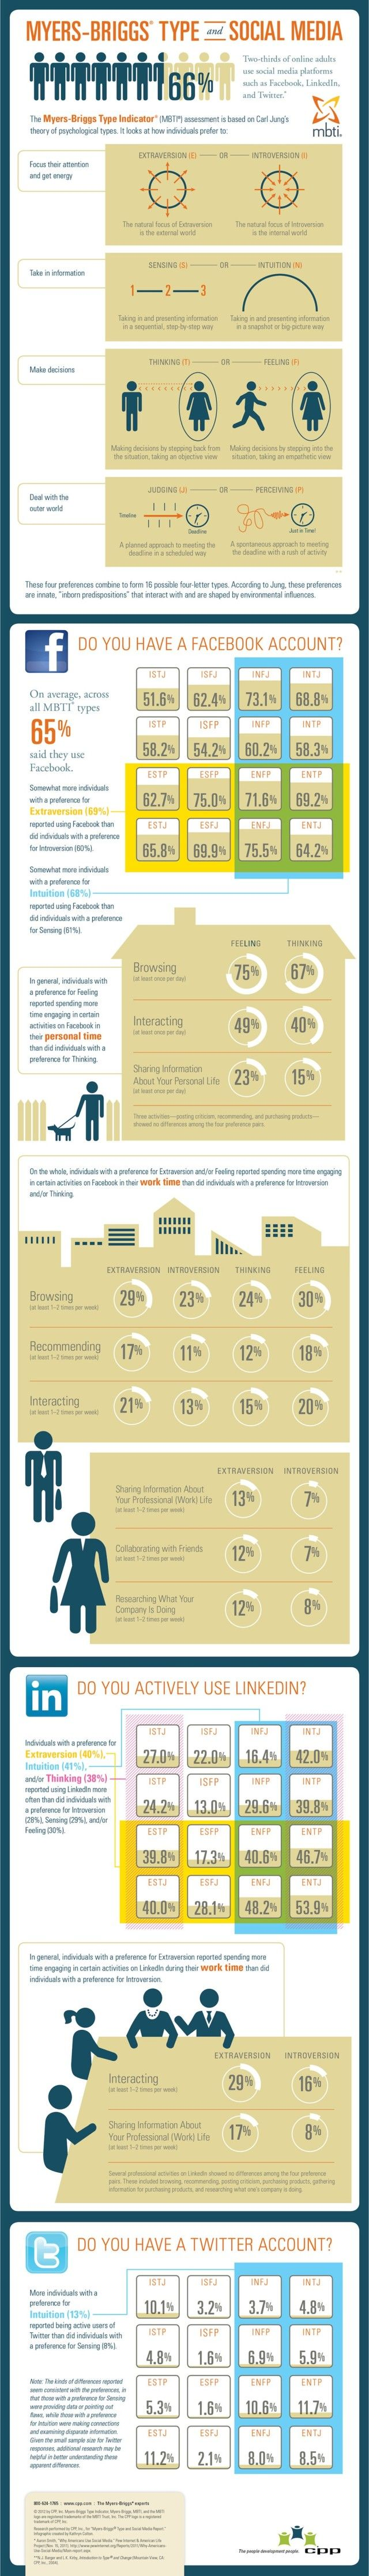 INFOGRAPHIC: SOCIAL MEDIA AND MYERS BRIGGS: posted by Douglas Karr, Marketing Tech Blog, 5/12/13 --> View CPPs Myers-Briggs Type and Social Media Report @ https://www.cpp.com/contents/MBTI_and_Social_Media_Report.aspx